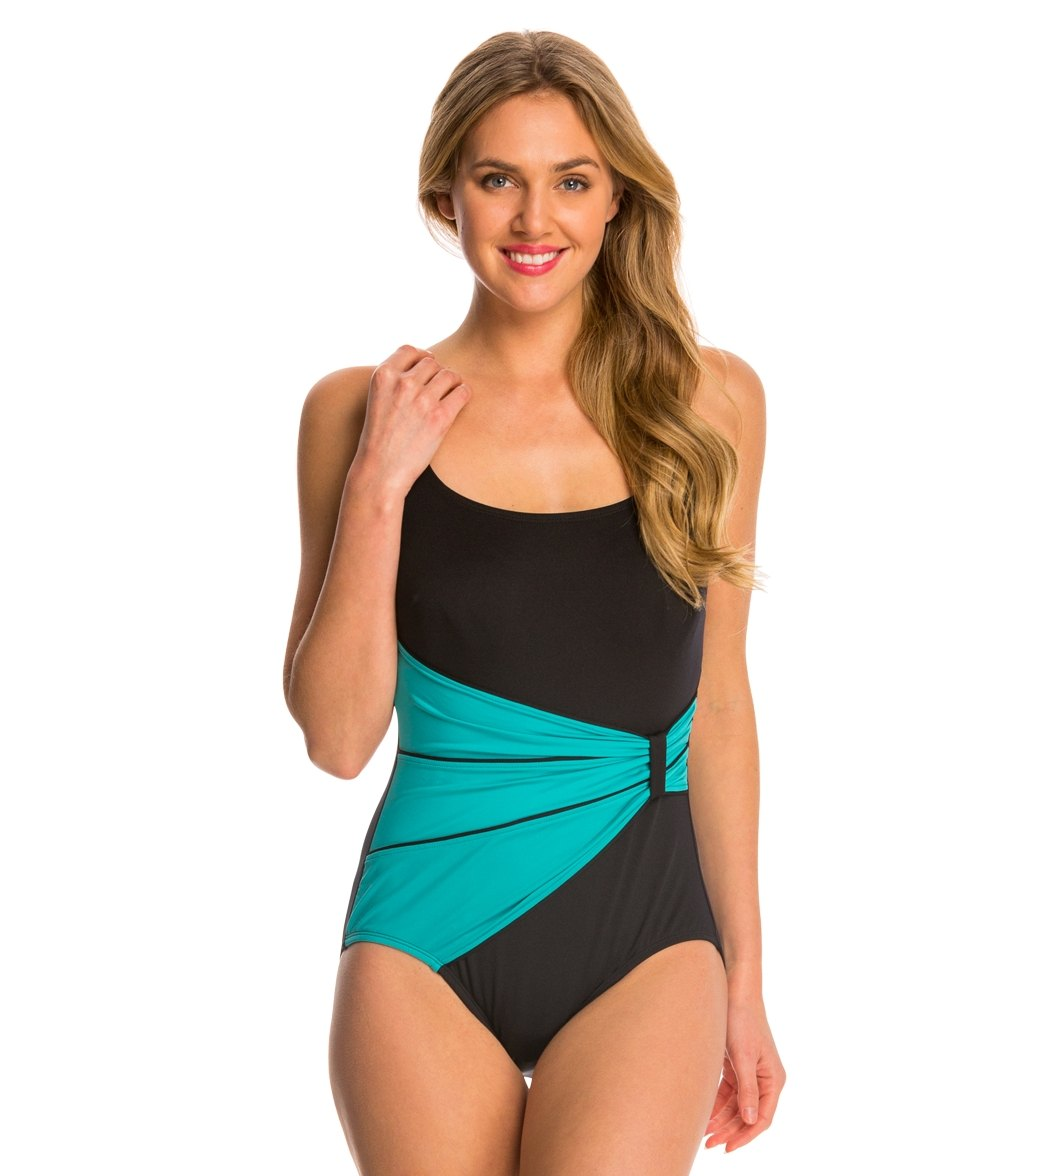 dc79cfe198a ... Gabar Pool Colorblocking Draped Sash One Piece Swimsuit. Play Video.  MODEL MEASUREMENTS